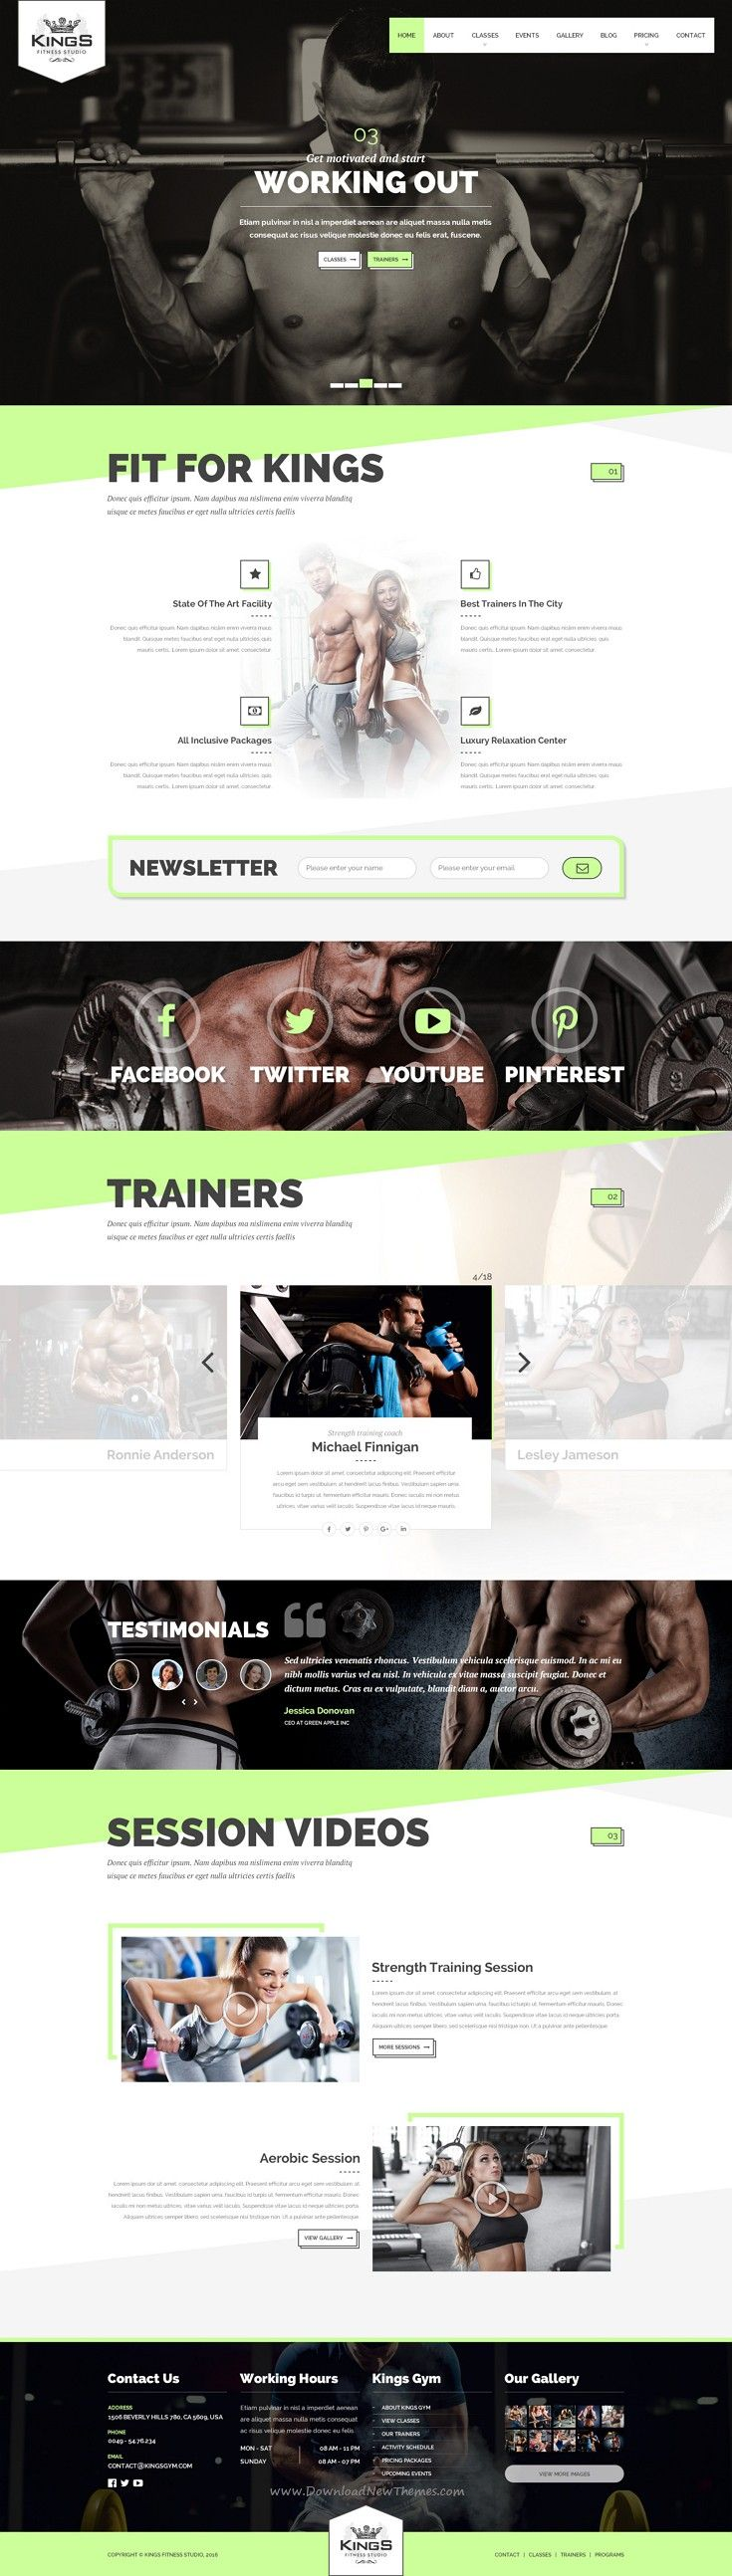 Kings Gym Fitness #PSD Template is the perfect solution for gyms and #fitness studios #website. Download Now!